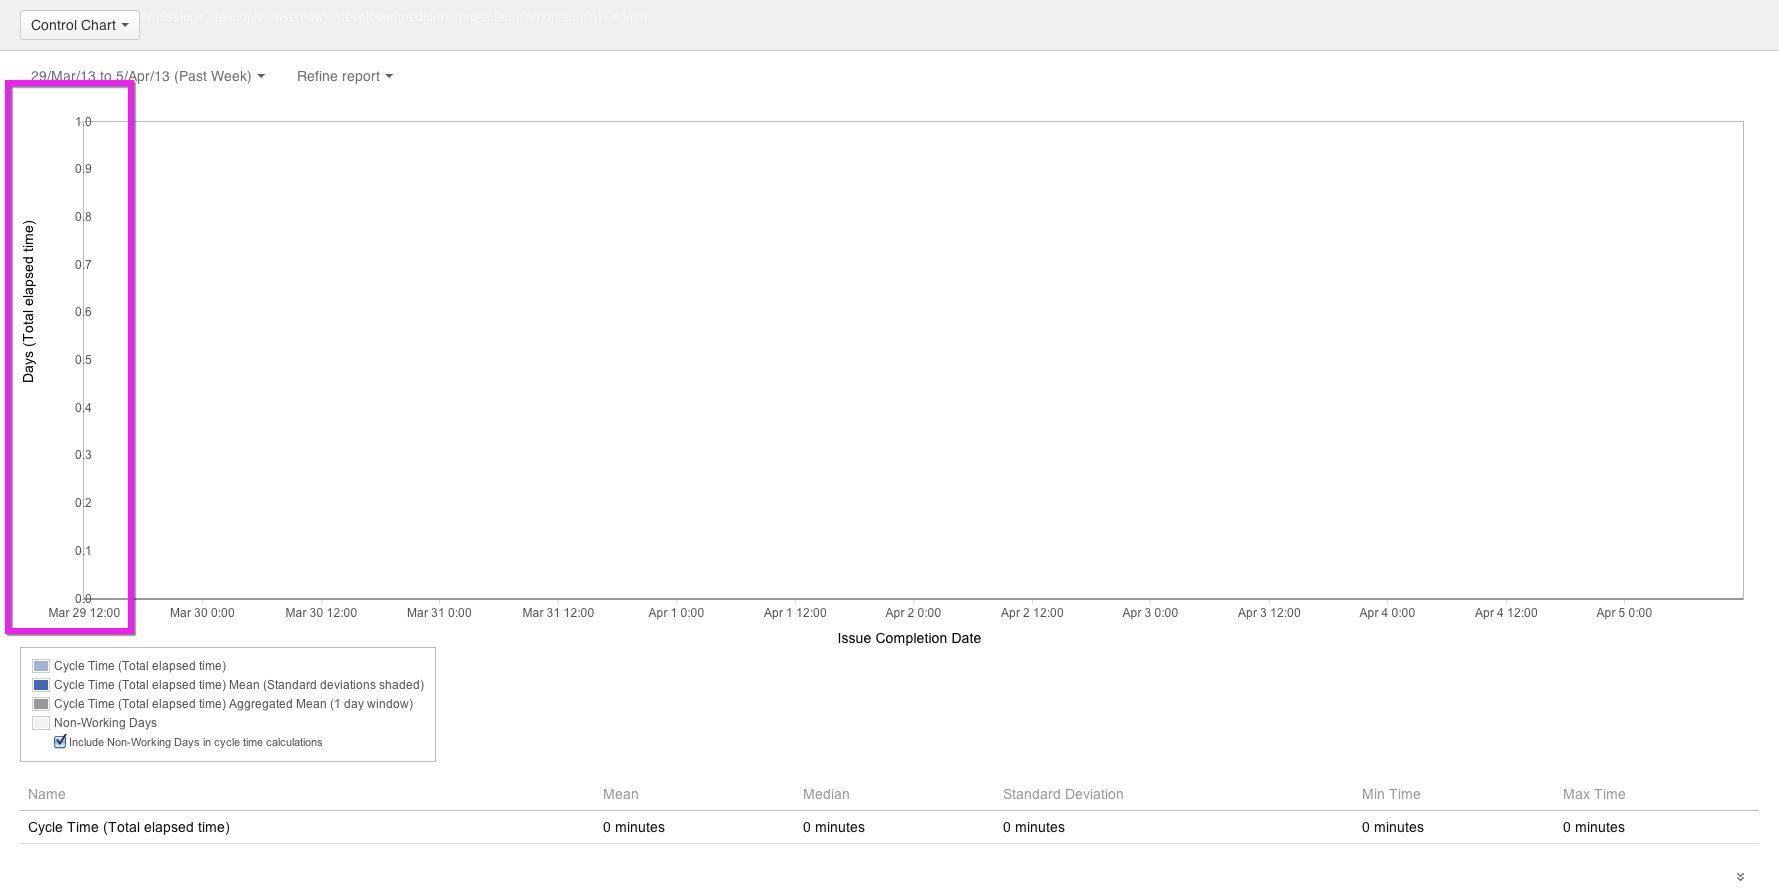 [JSWSERVER-8300] when in projector mode, scroll bar disappears, so axis shifts into chart